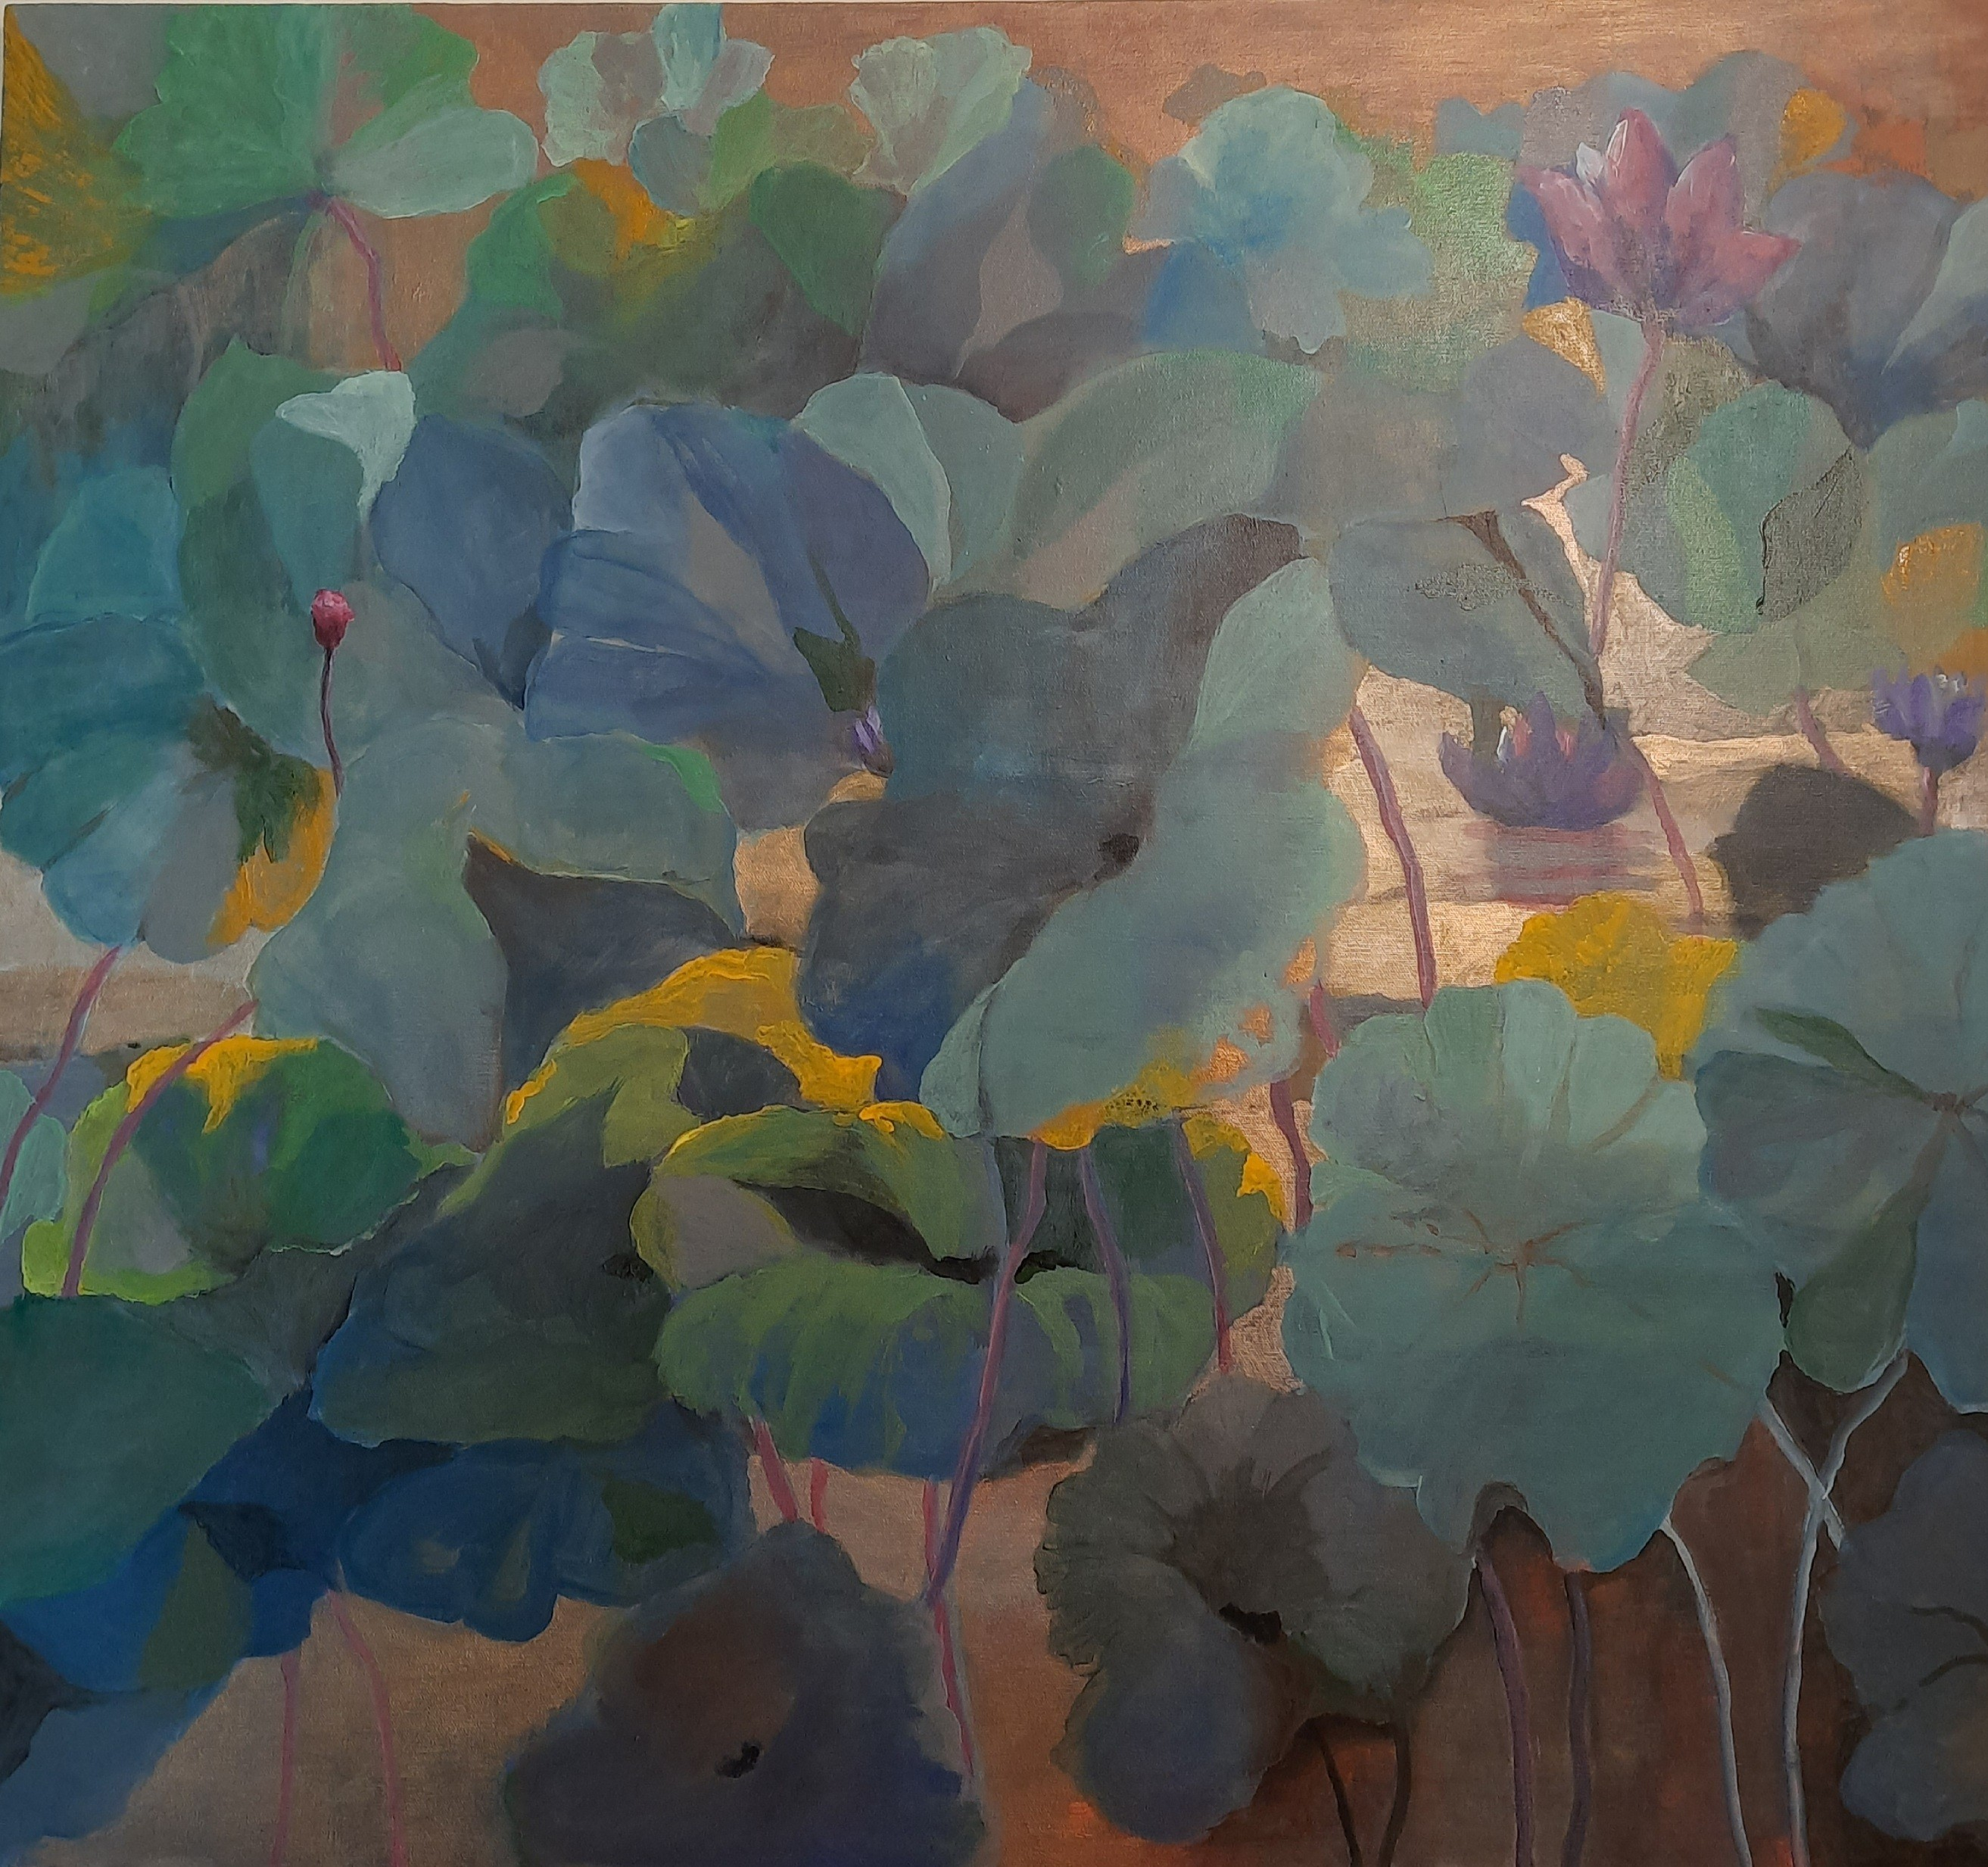 Colours of nature by Jean wijesekera